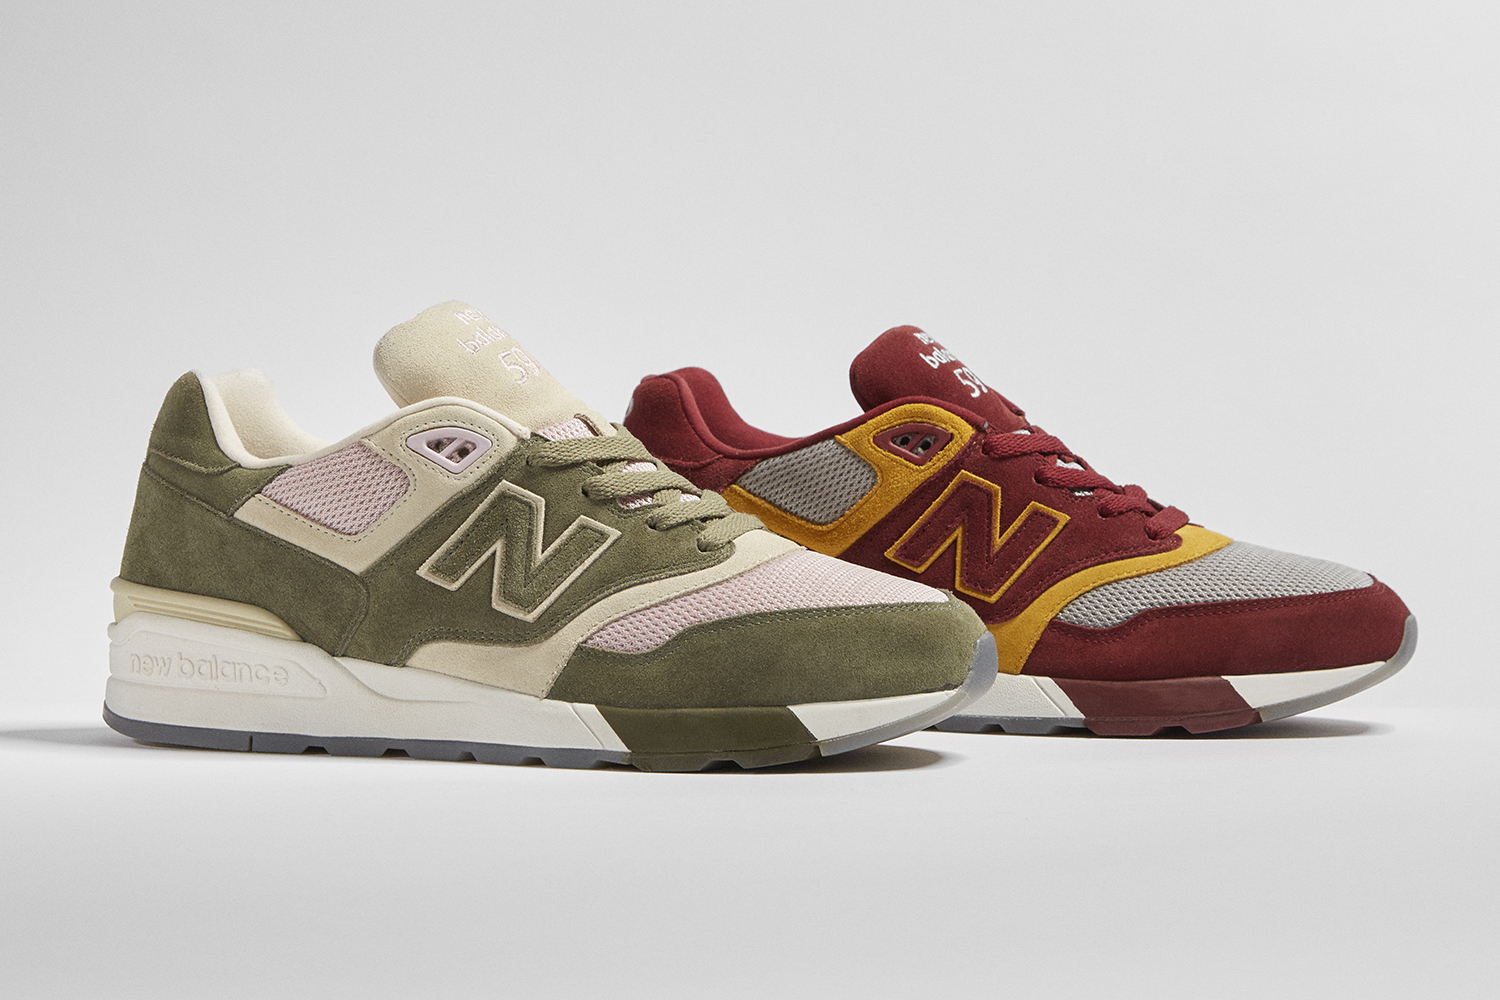 New Balance 597 'Neotropic' – size? Exclusive